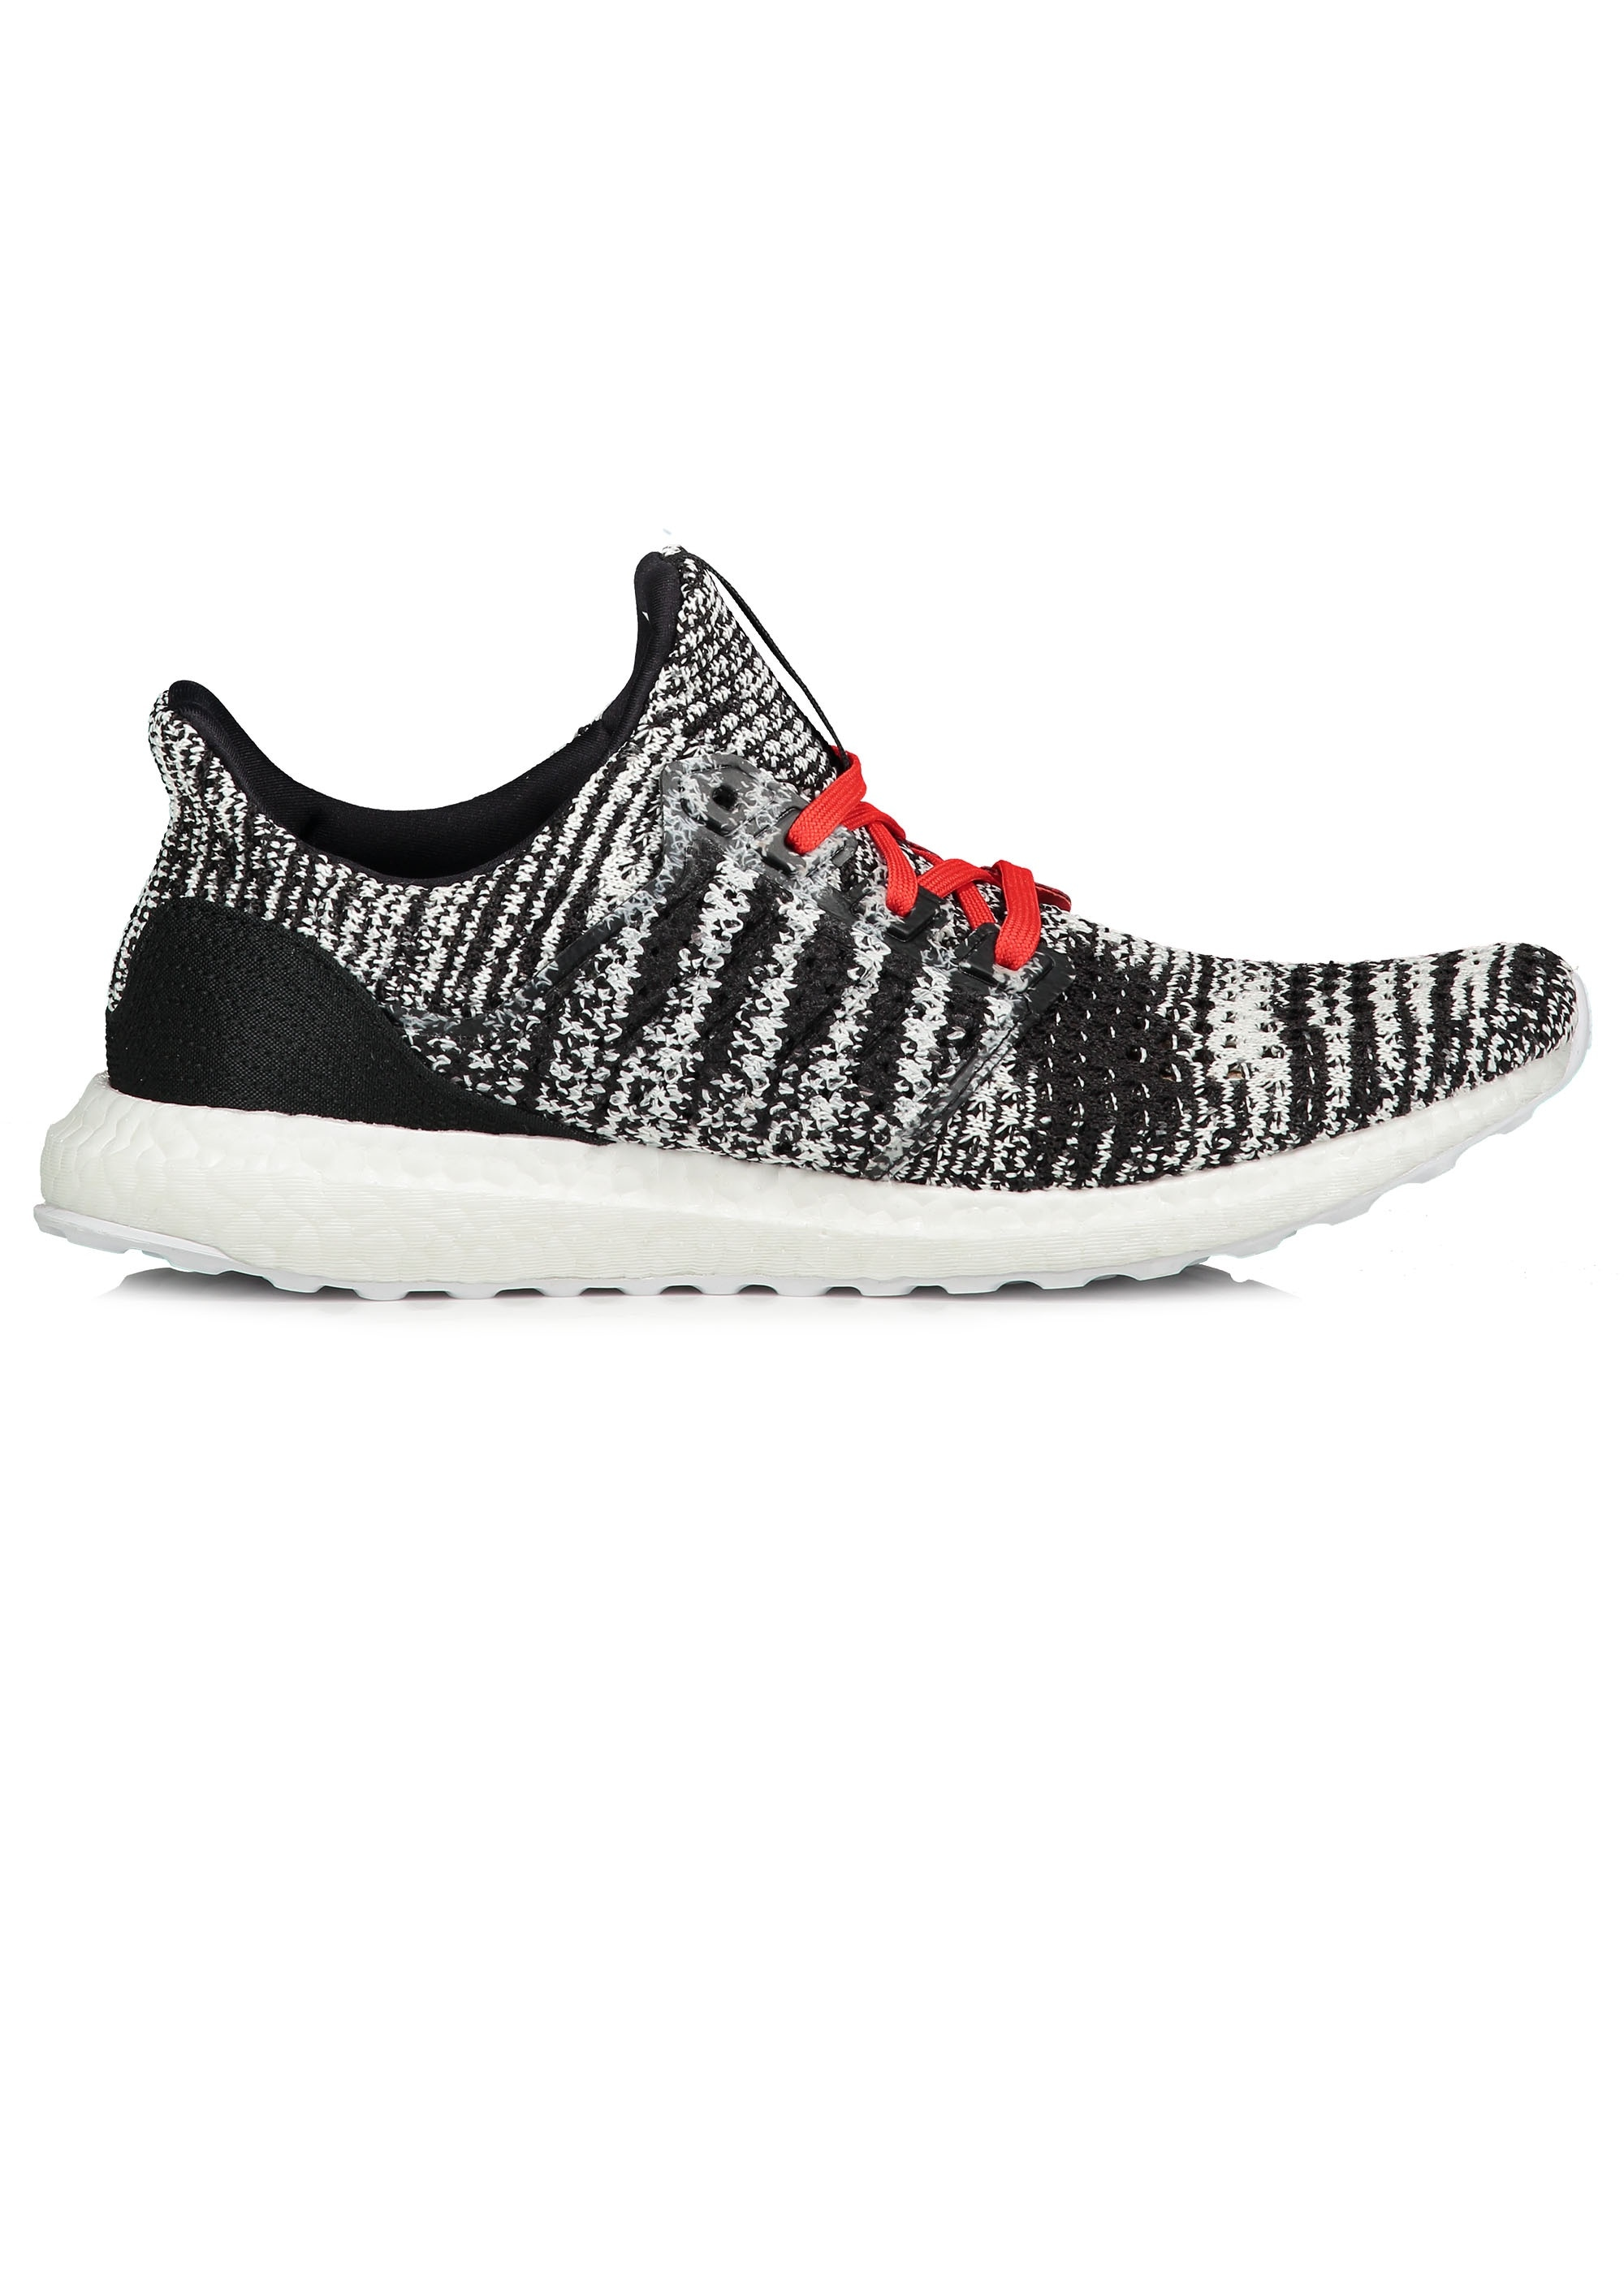 100% authentic 09df4 c2717 Ultraboost Clima - Core Black   White   Active Red